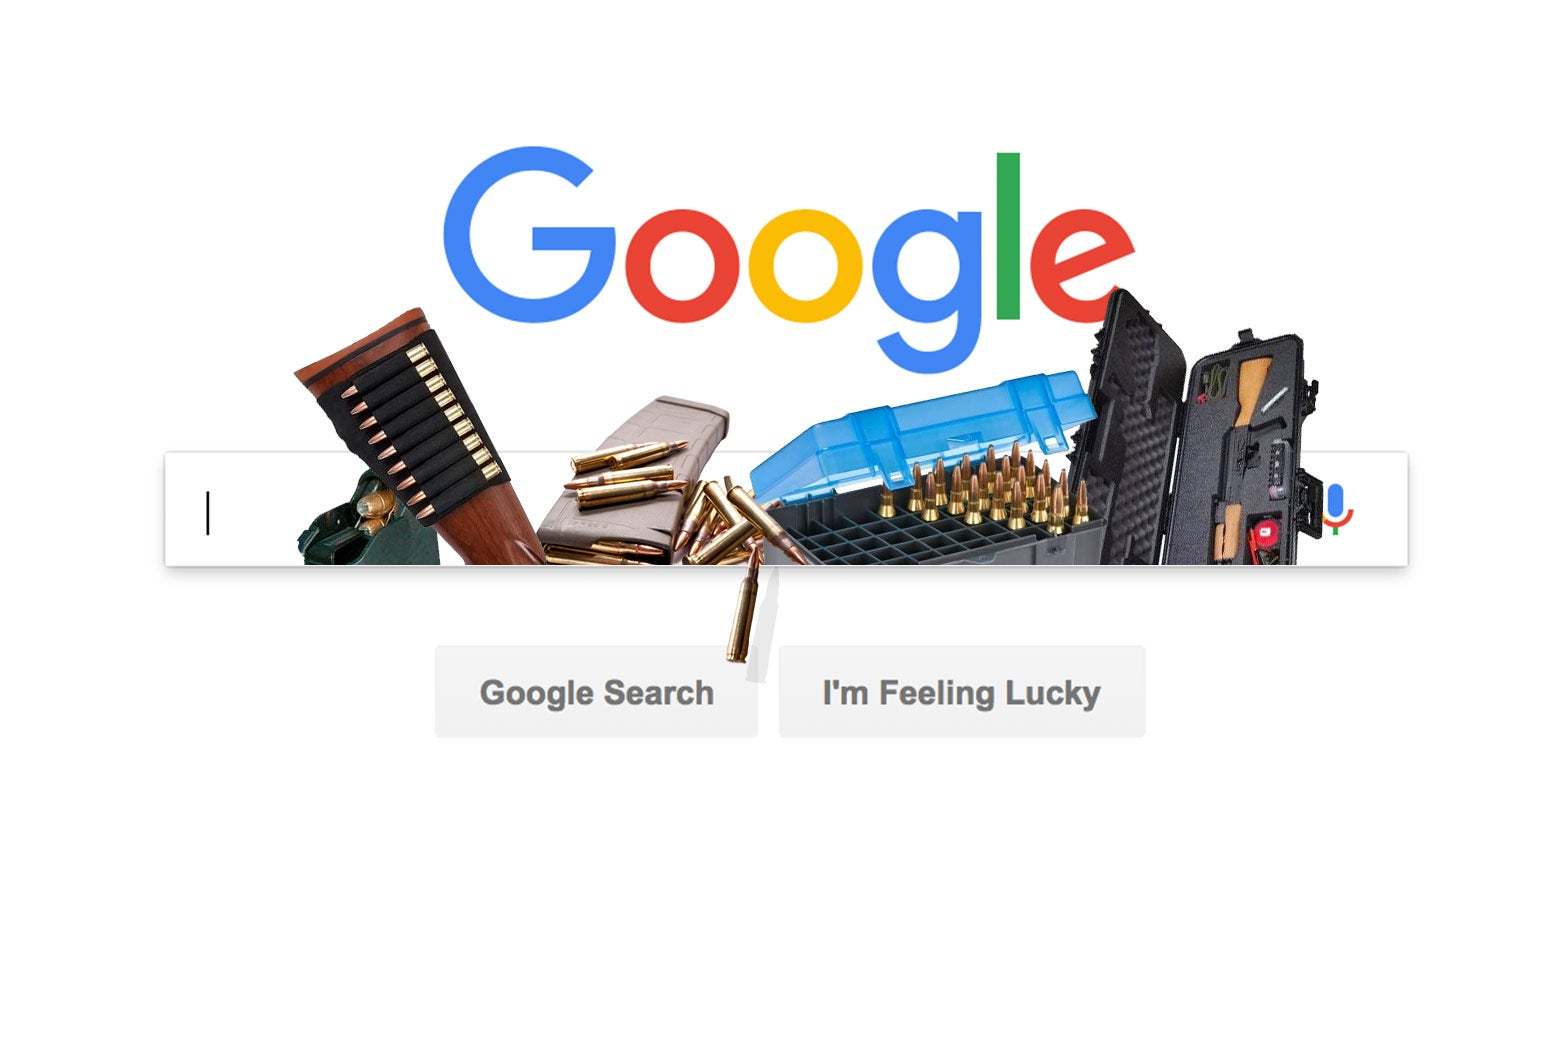 Various gun accessories pictured on top of a Google search box.